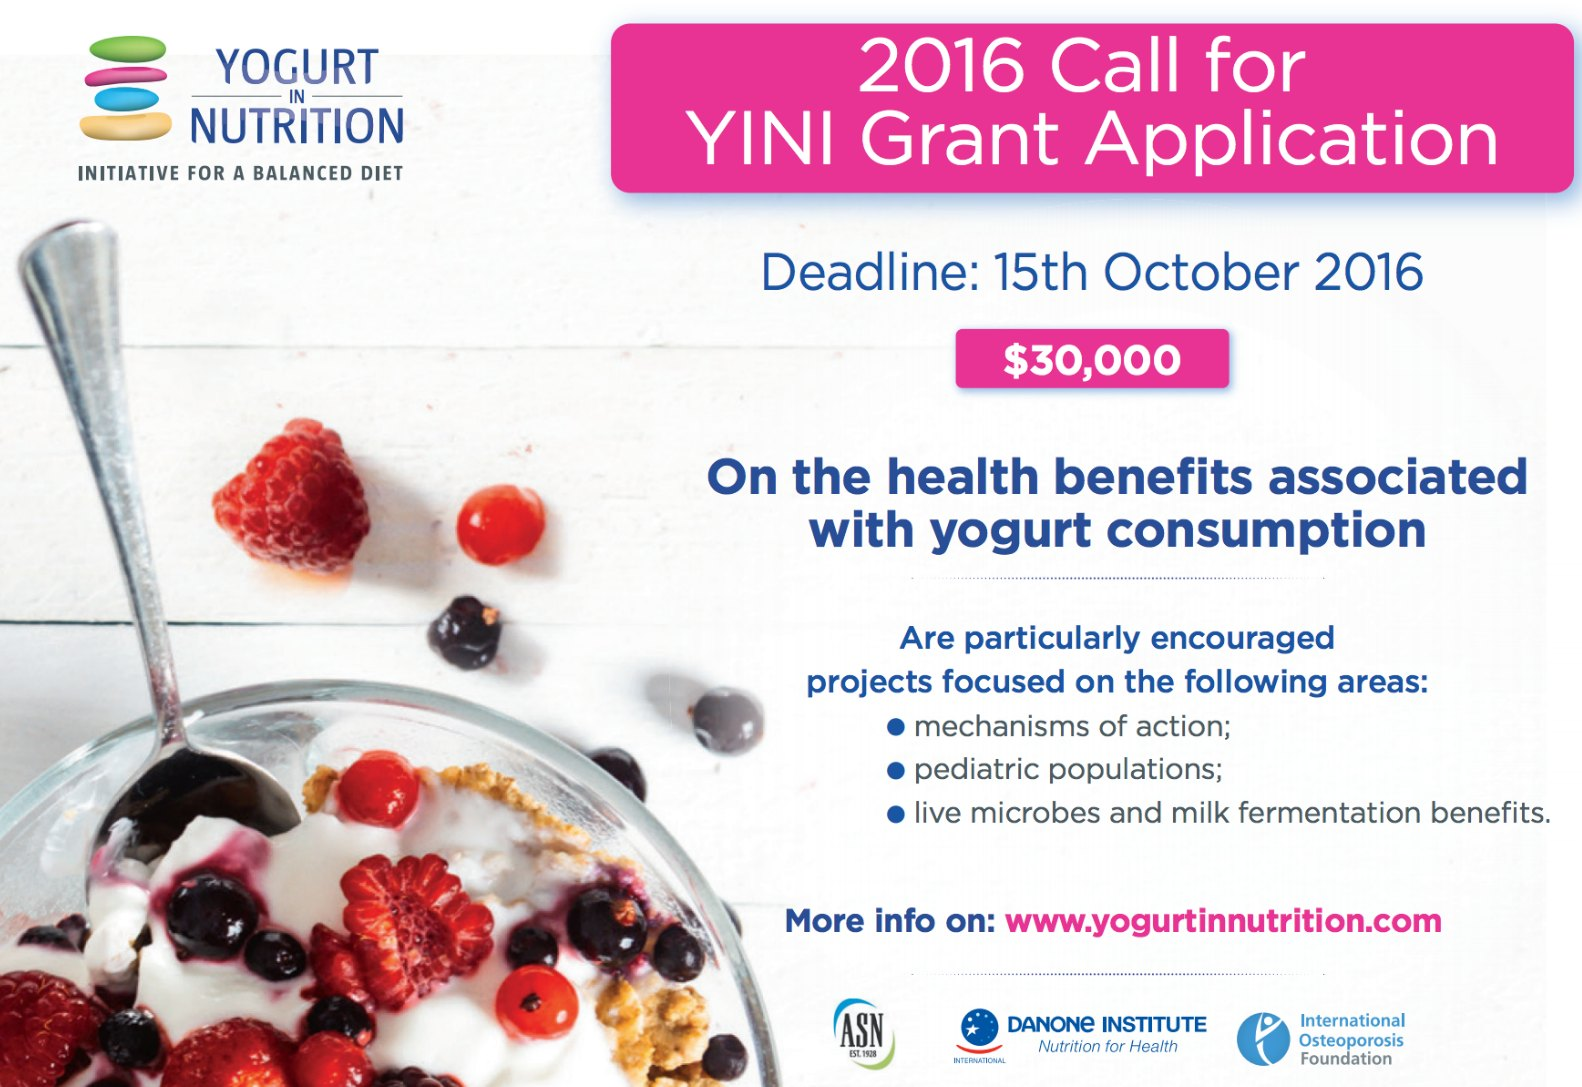 2016 Call for YINI Research Proposals Yogurt in Nutrition – Research Proposals